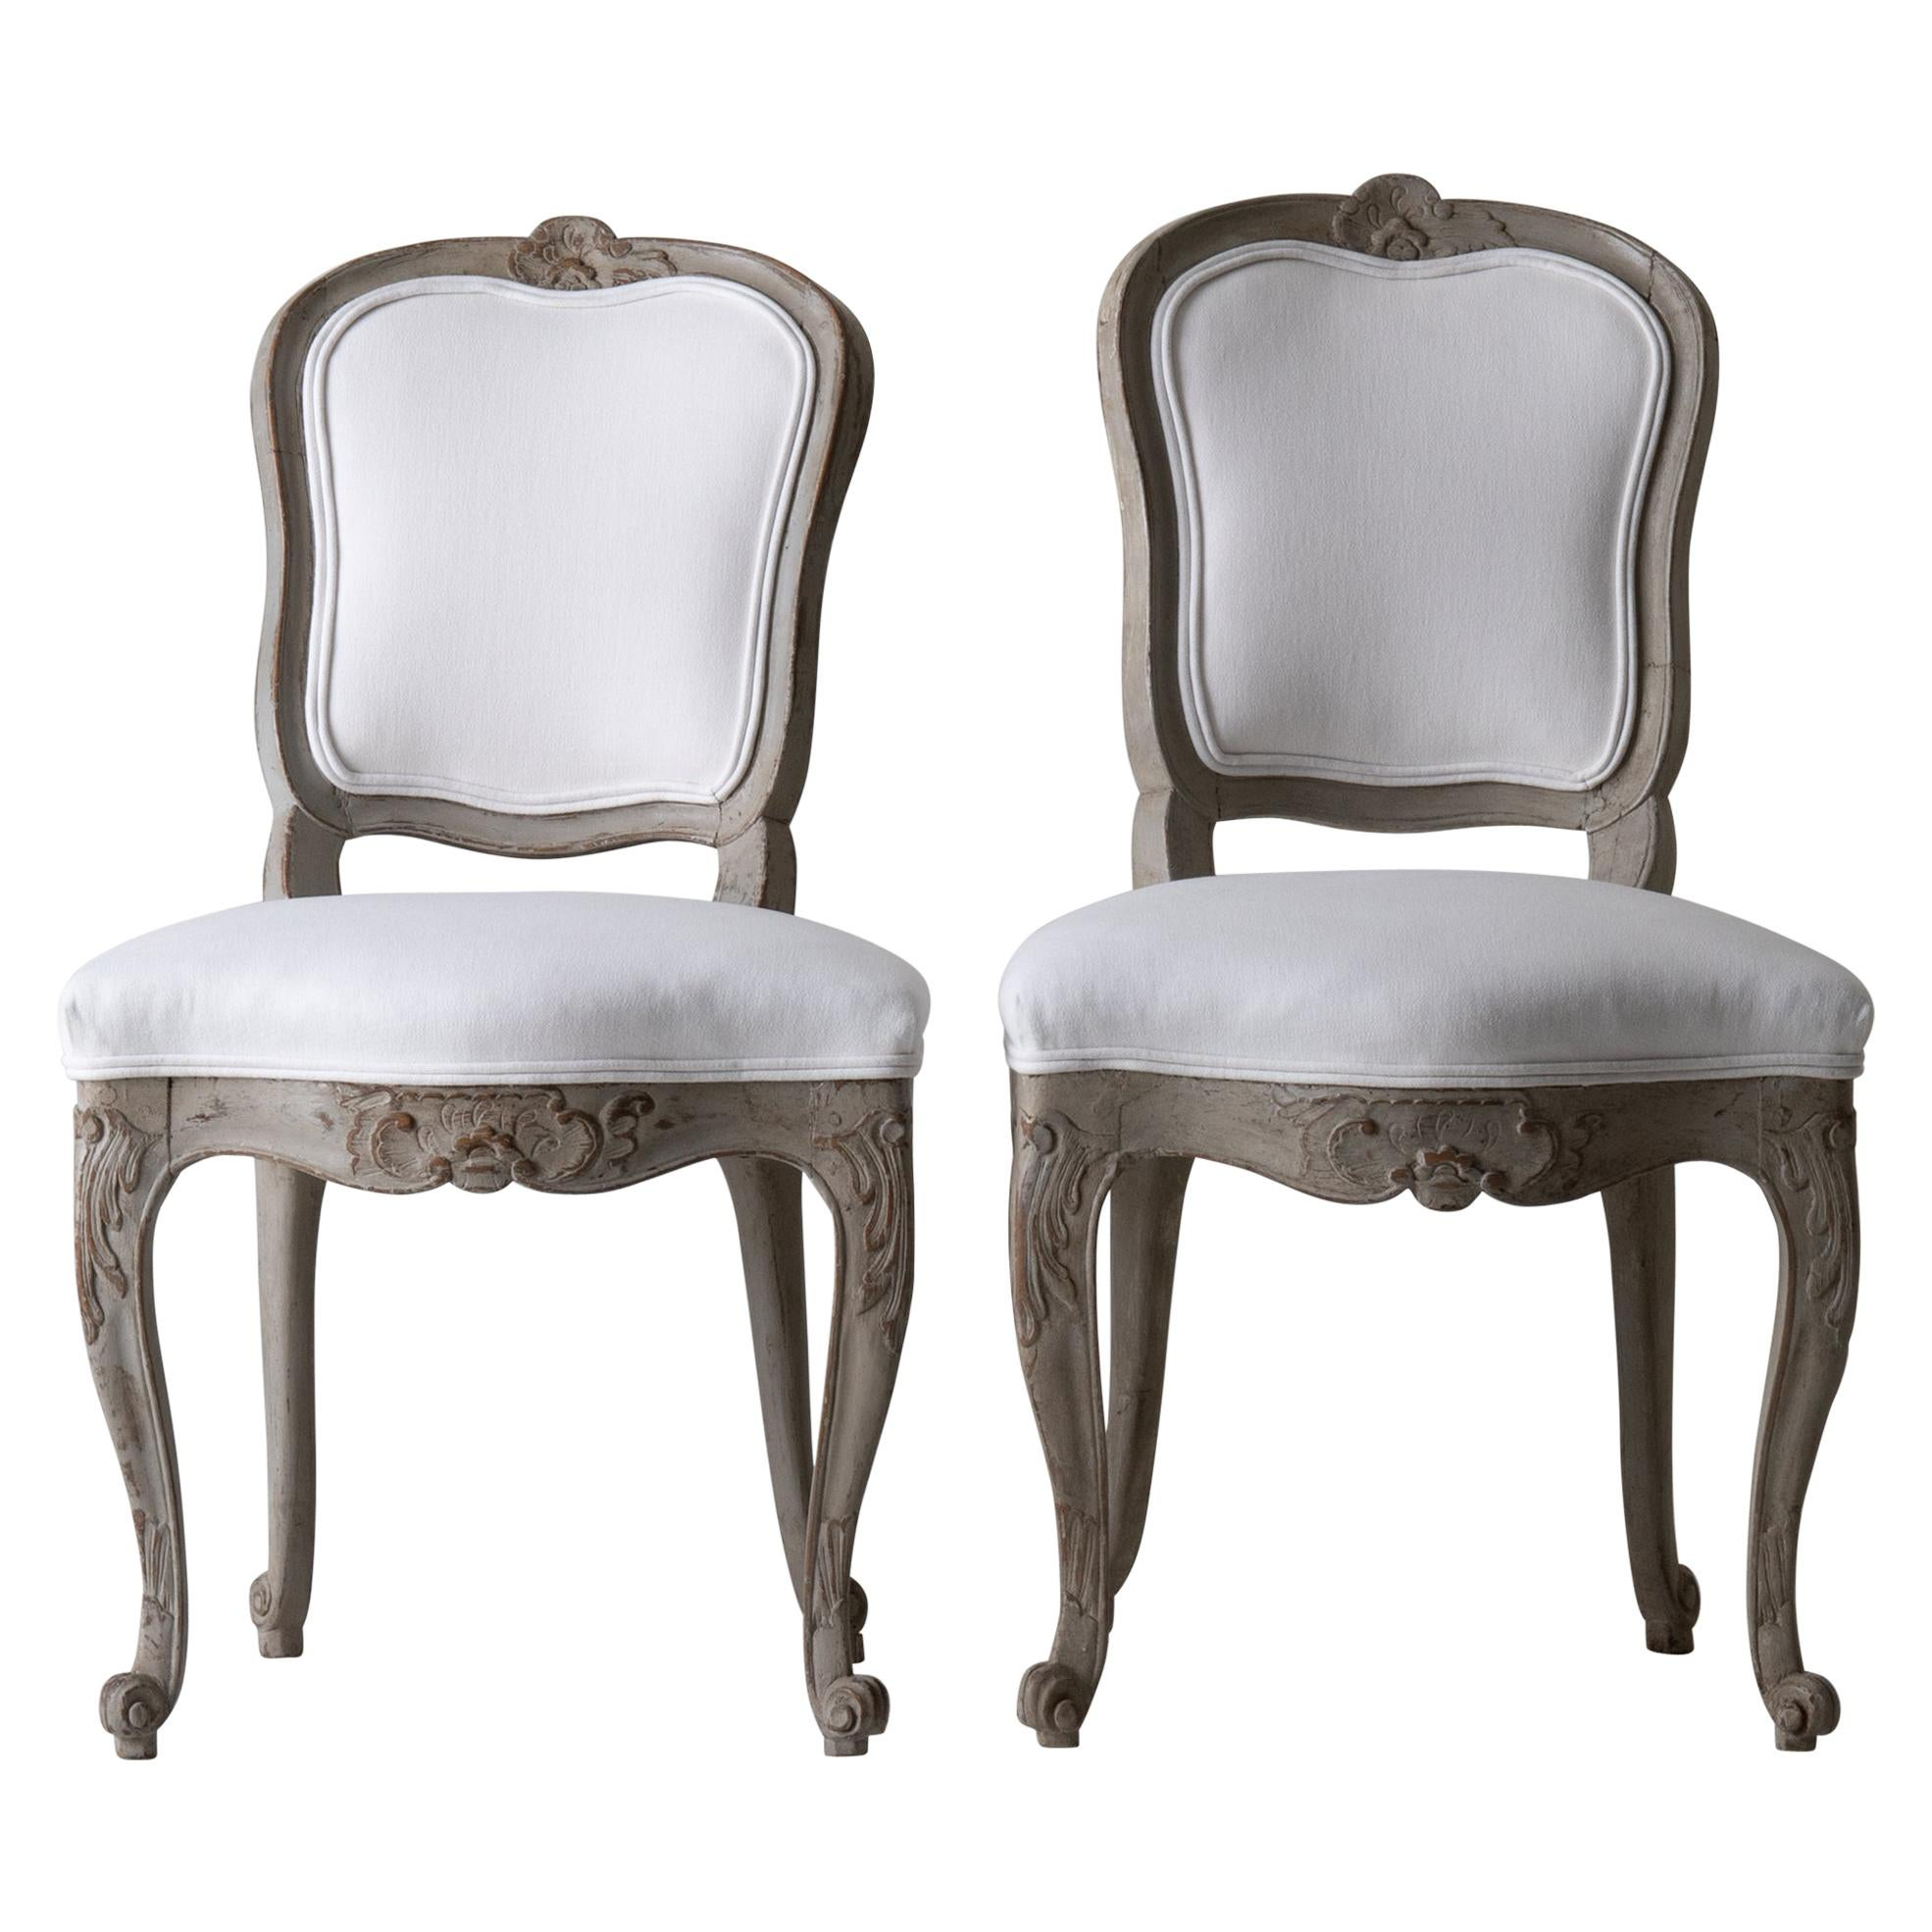 Chairs Pair of Swedish Rococo 1750-1775 White Green Gray, Sweden